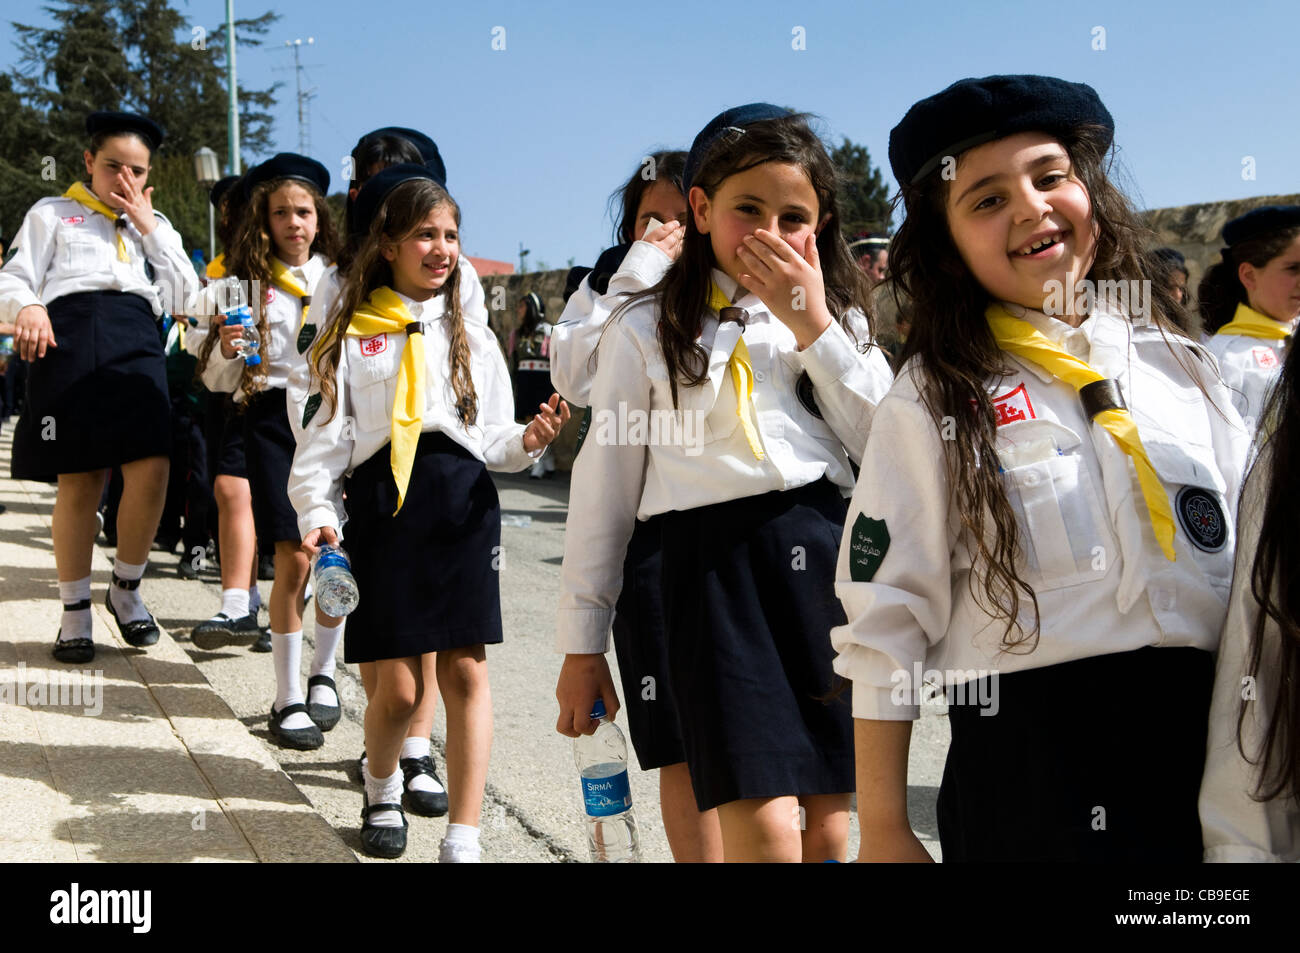 Palestinian girl scouts in a procession. - Stock Image